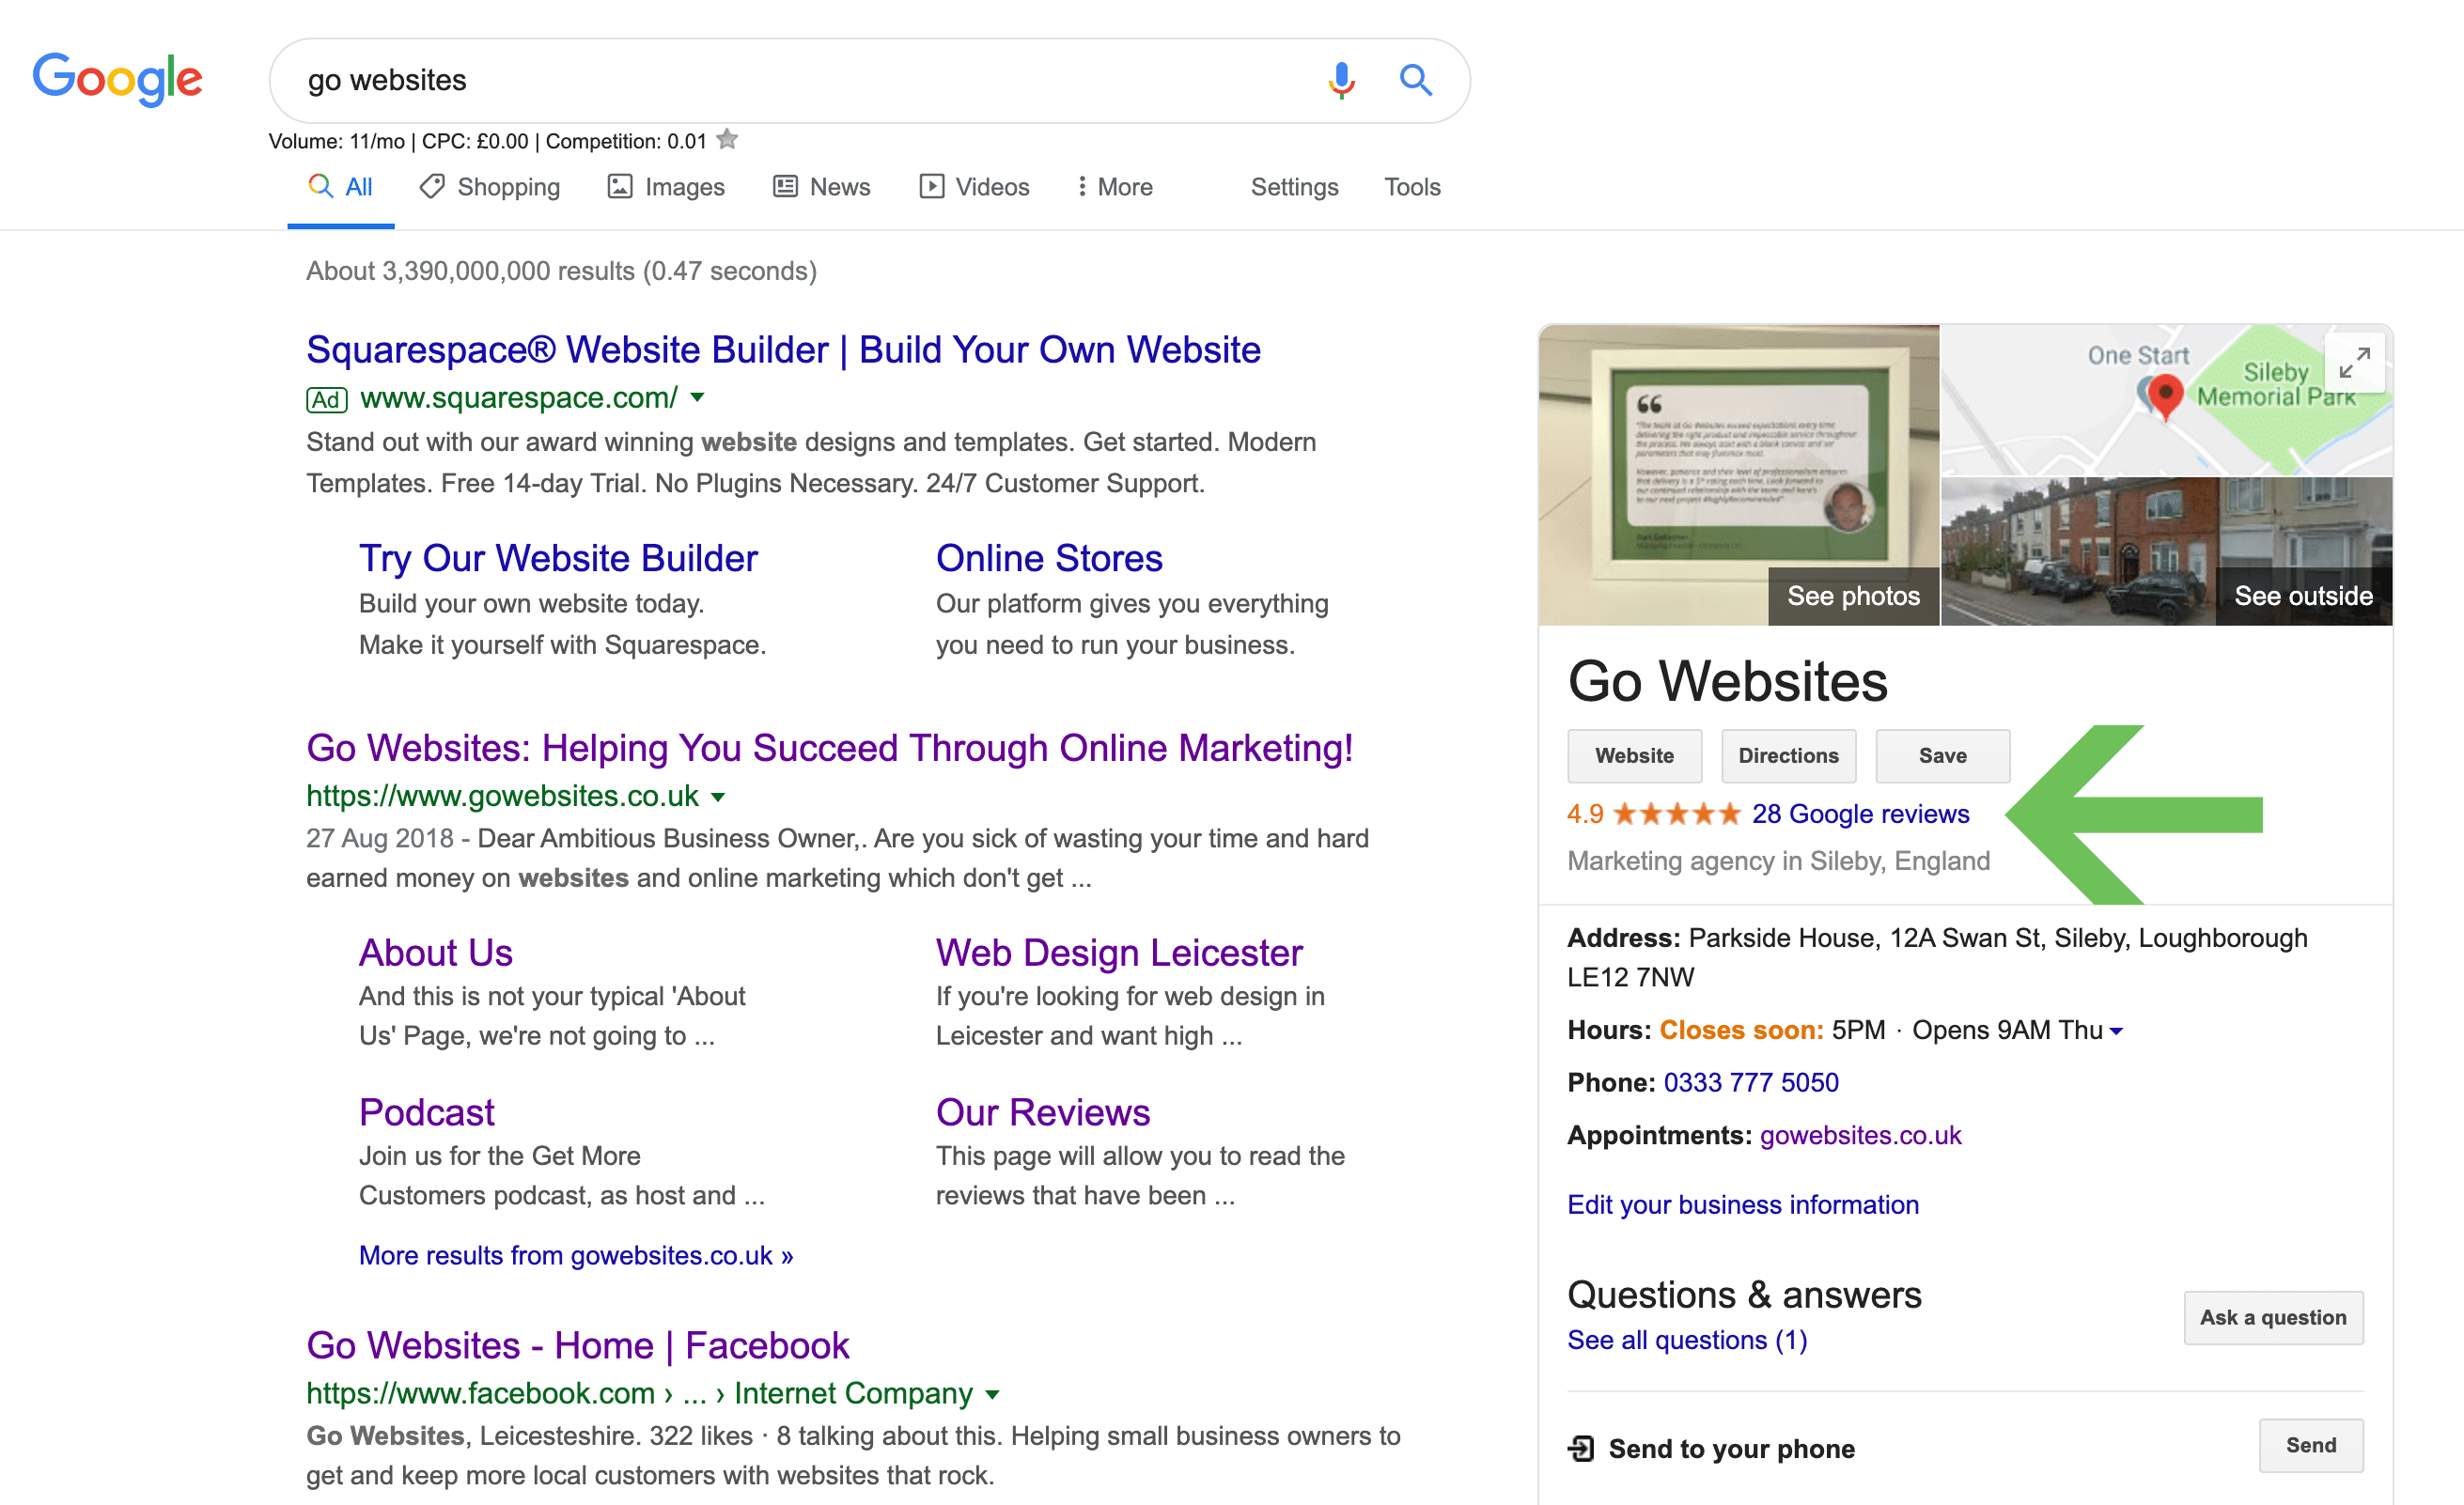 Go Websites Google Result